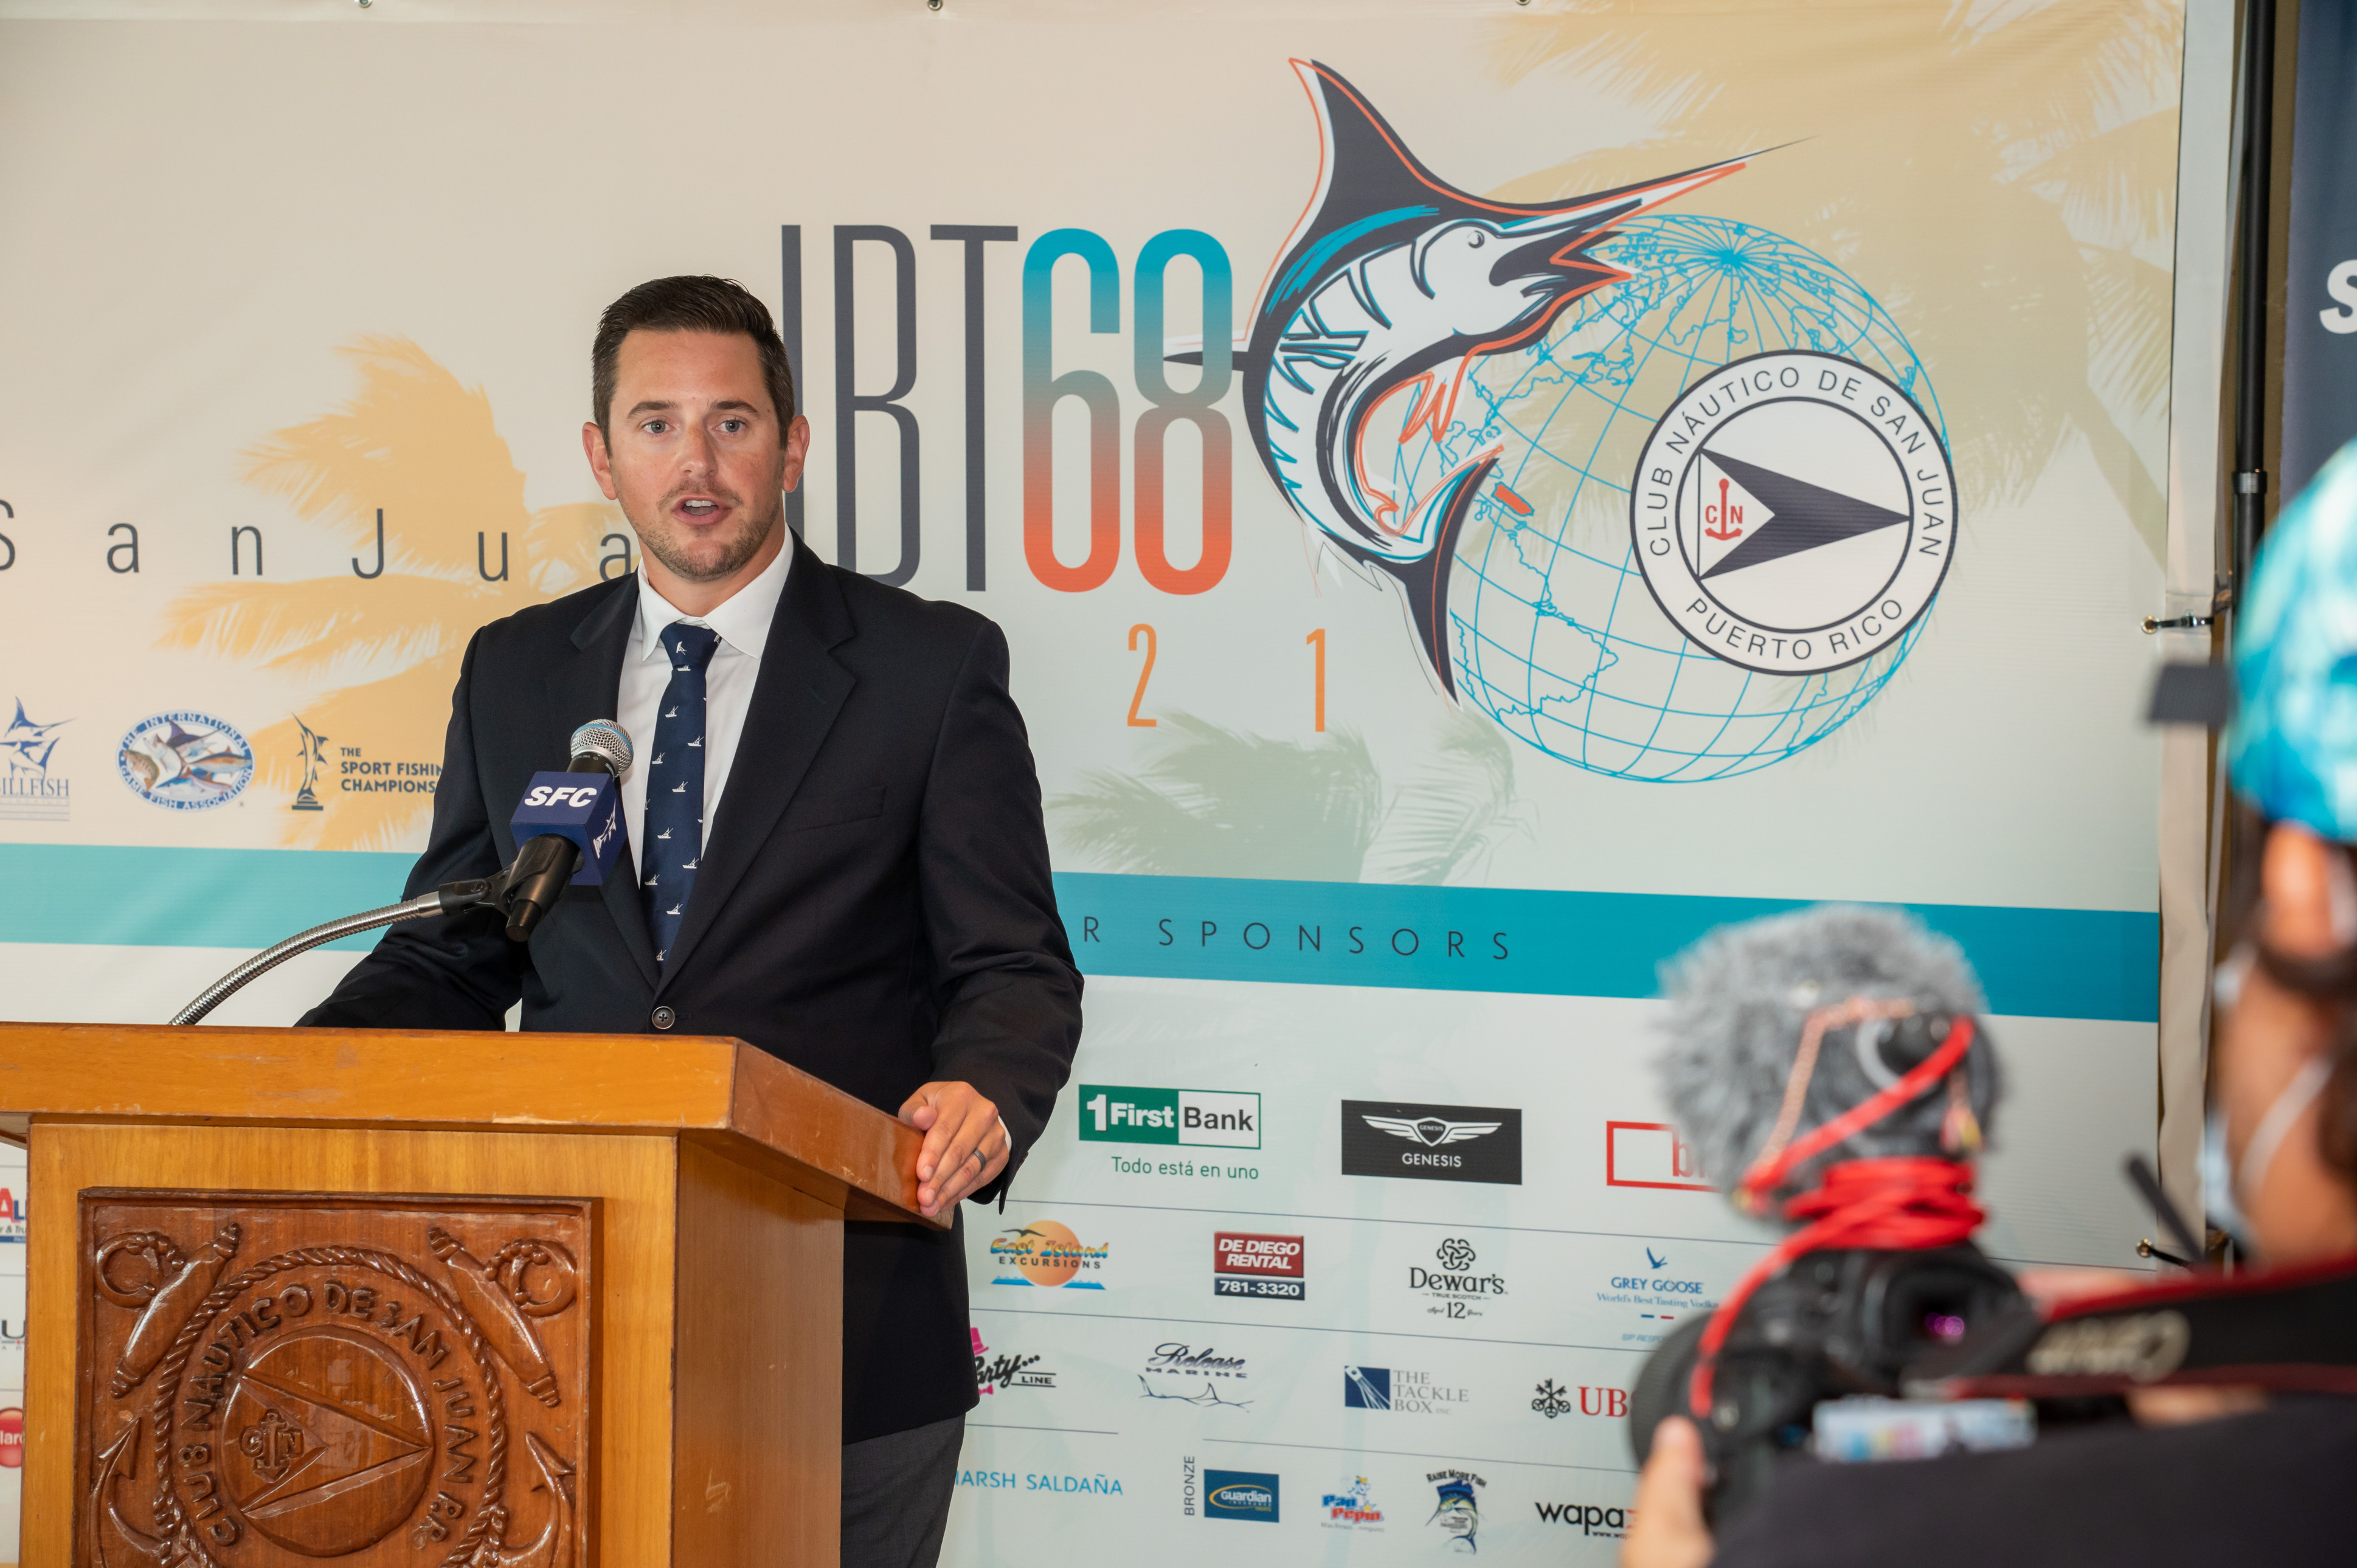 08.16.21 press conference for the CNSJ 68thIBT - 68th International Billfish Tournament , which runs from August 17 - 21, 2021.